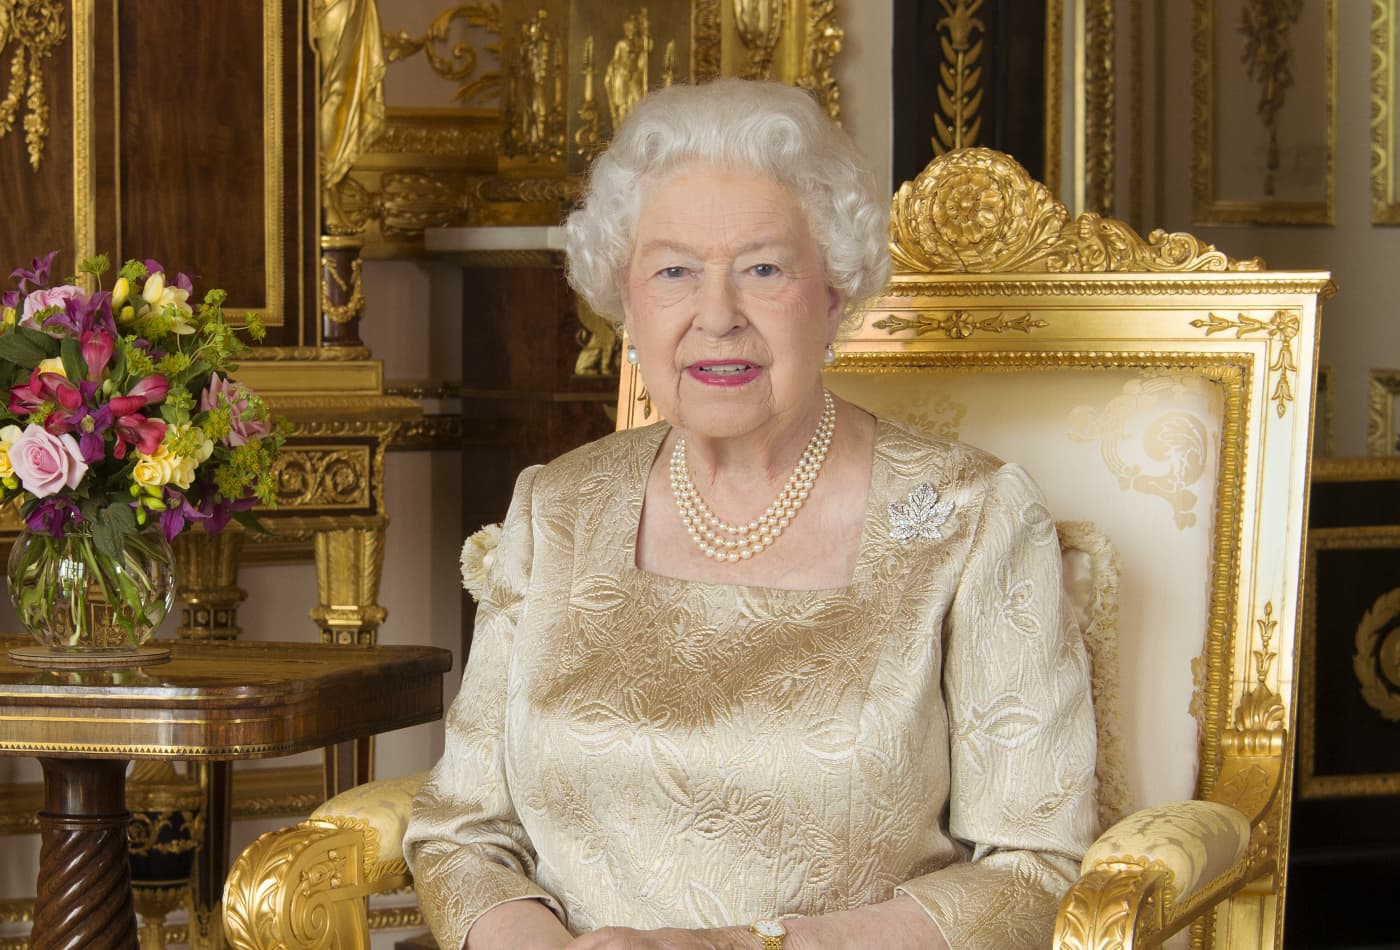 Queen goes viral for urging generosity, sacrifice near gold